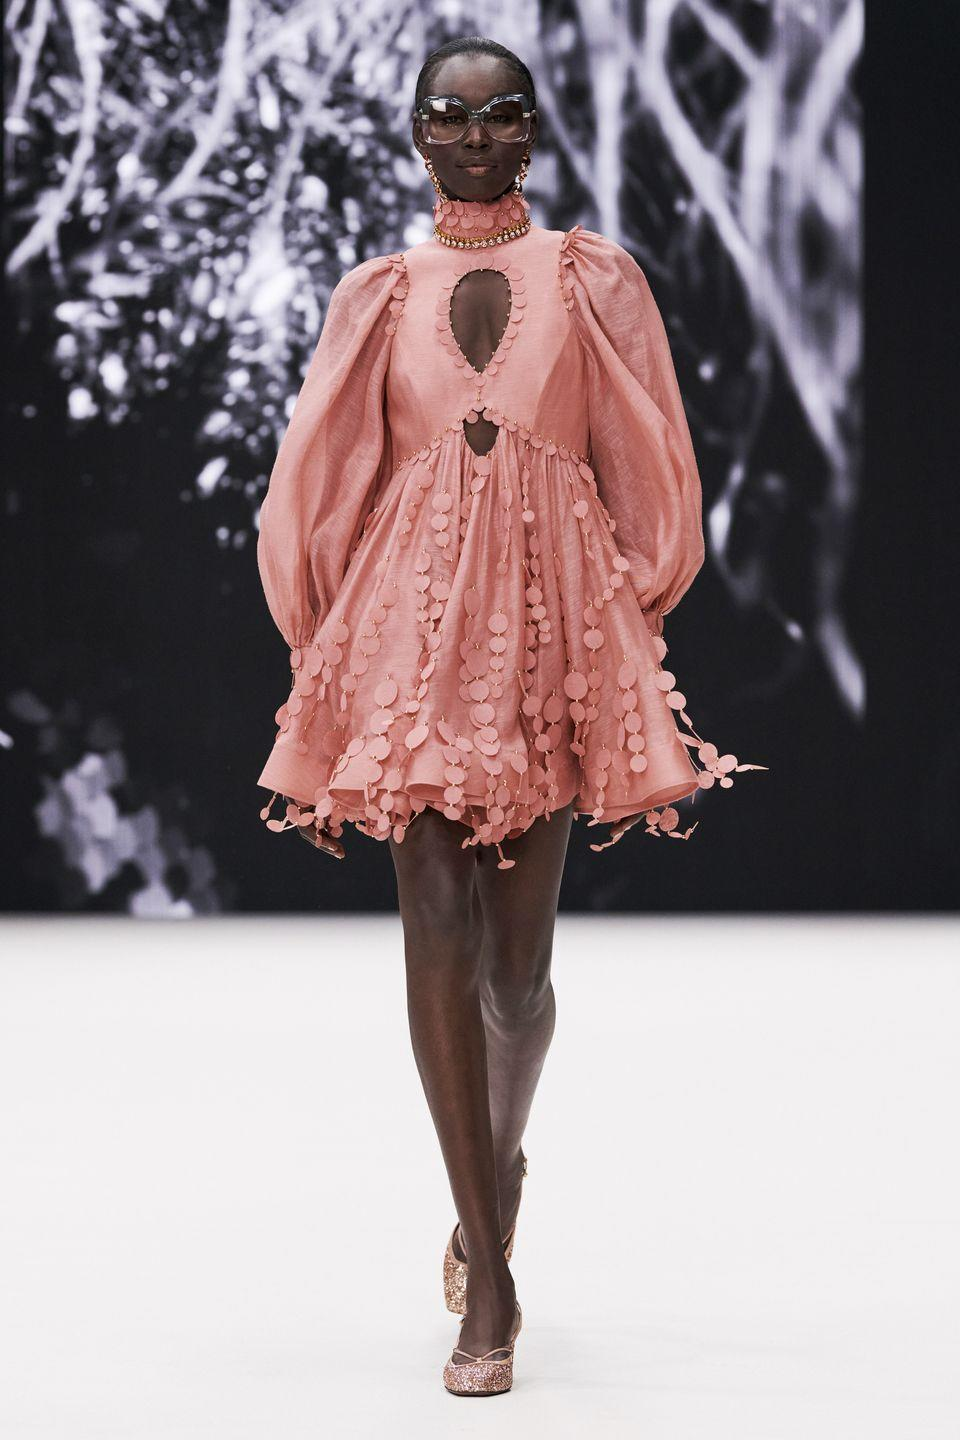 "<p>An appreciation of the 1970s was clear to see in Zimmermann's latest autumn/winter collection, with the namesake designer explaining that she started with the memory of a music television show in Australia in the Seventies and Eighties called Countdown.</p><p>""Growing up in the suburbs, between 6pm and 7pm each Sunday night, it was this exciting and inspirational escape for me, where music, fashion and a wider world came together,"" creative director Nicky Zimmermann said. ""There were all these great international bands who were touring Australia, performing alongside established and emerging local artists, and these hilariously candid interviews with the host, Molly Meldrum. I loved the energy and creativity that came together with each show – it was so addictive! It was a really important influence on me growing up as a teenager, which is funny when I think back to it. The collection themes came as much from the mood it evoked as much as the eras it traversed.""</p>"